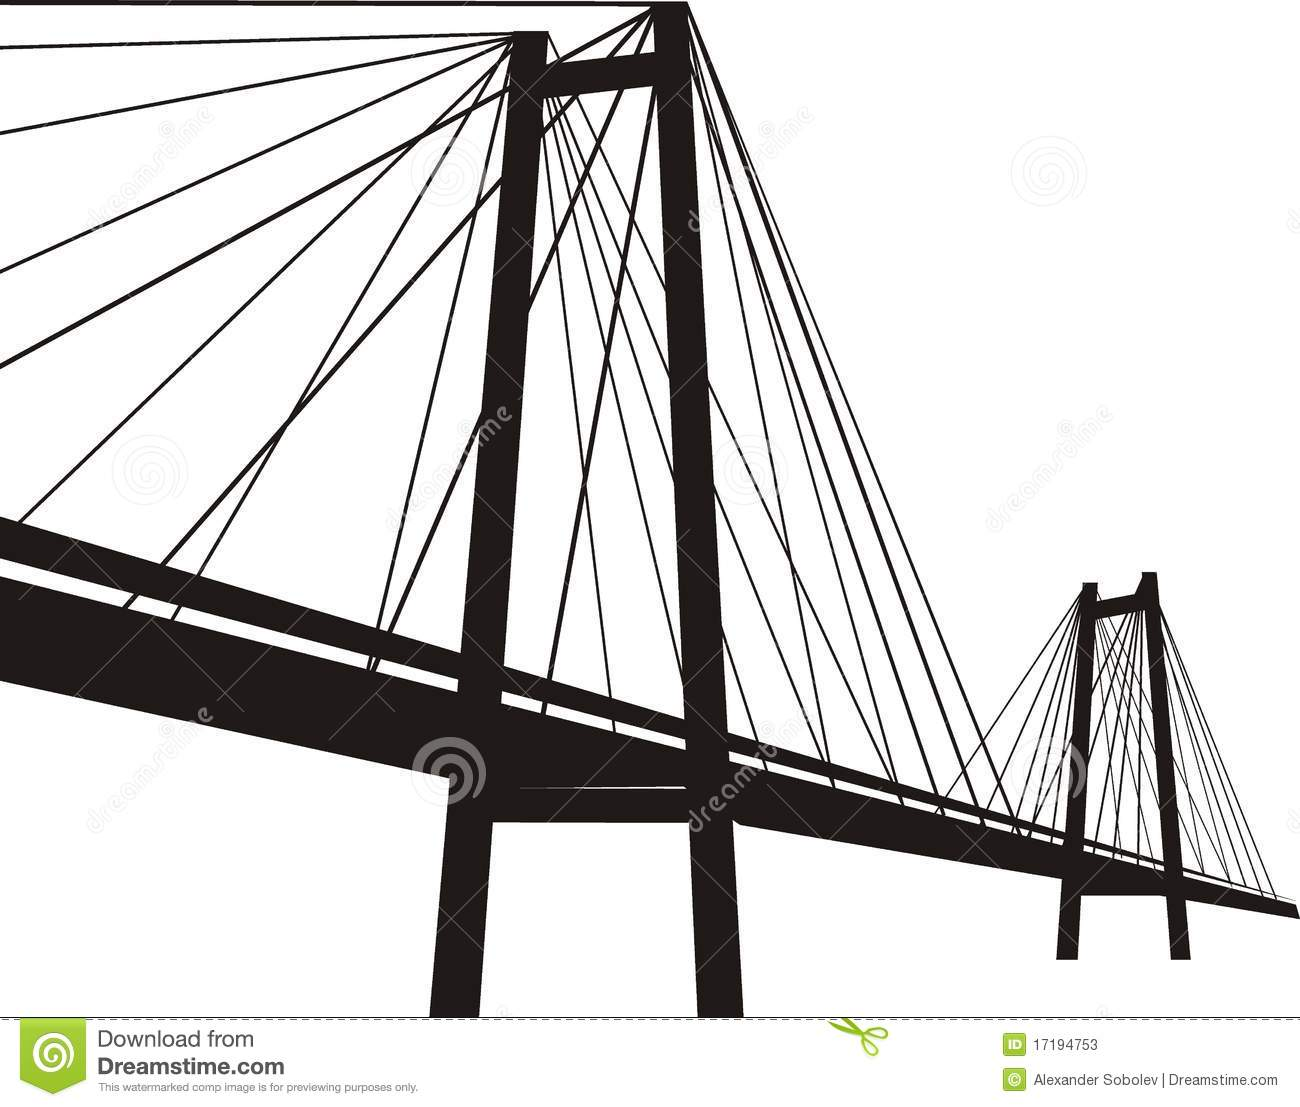 494181778 additionally SundialH203 furthermore Cable Stayed Bridge Clipart as well SheperdDial together with The Solara. on sundial construction